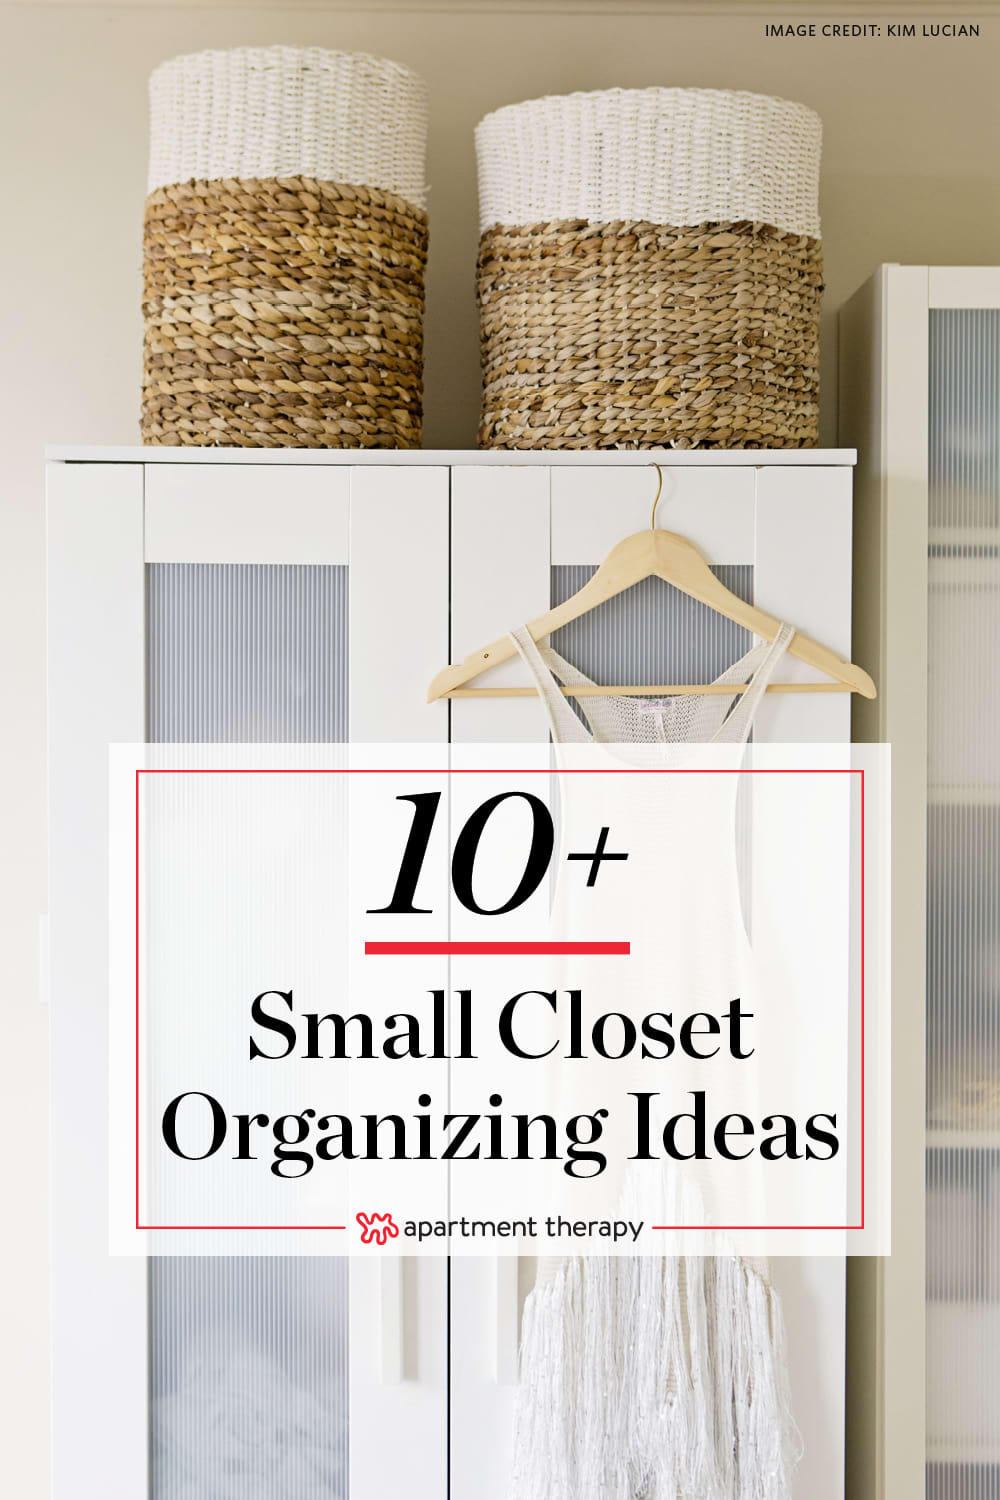 Closet Storage Ideas - Small Closet Organization | Apartment Therapy